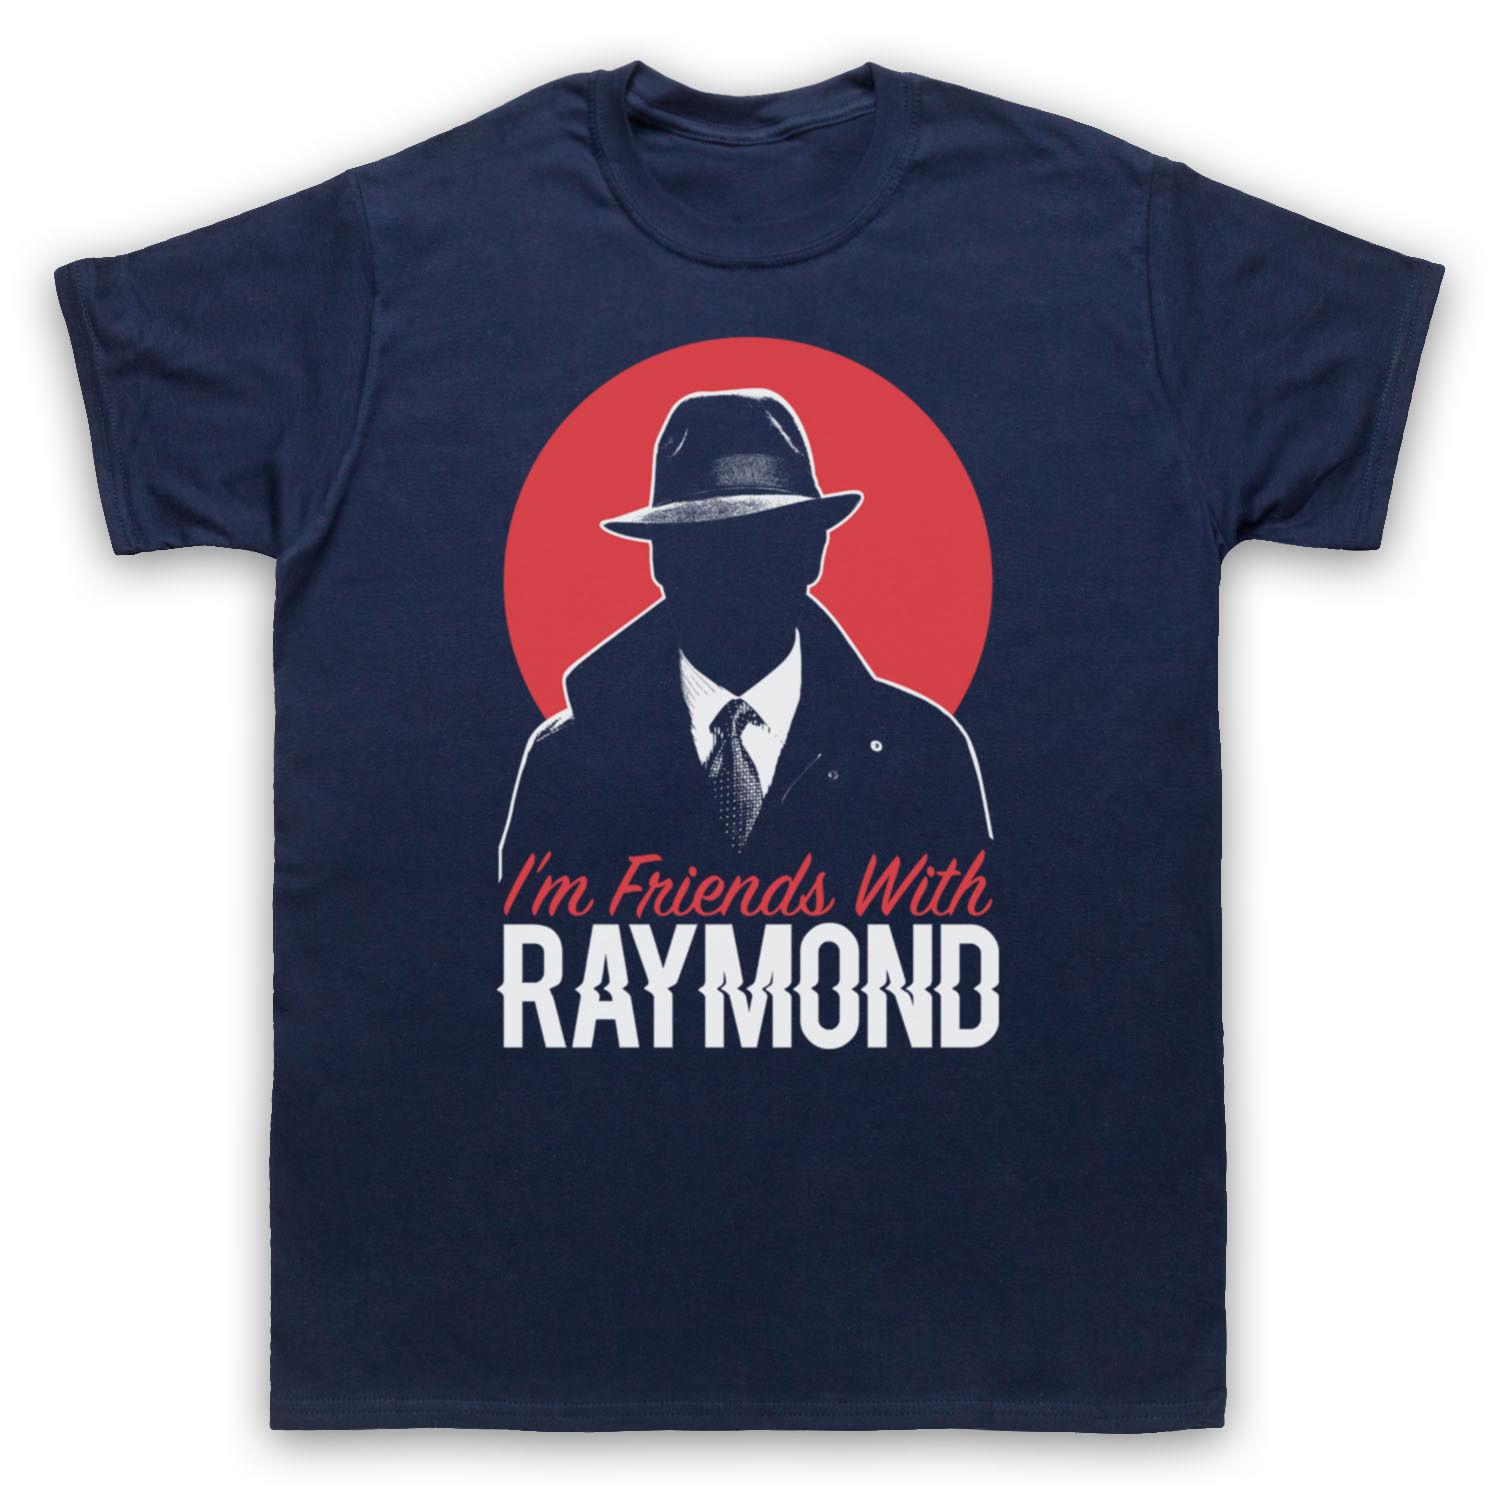 THE UNOFFICIAL BLACKLIST FRIENDS WITH RAYMOND T-SHIRT ADULTS & KIDS SIZES COLS